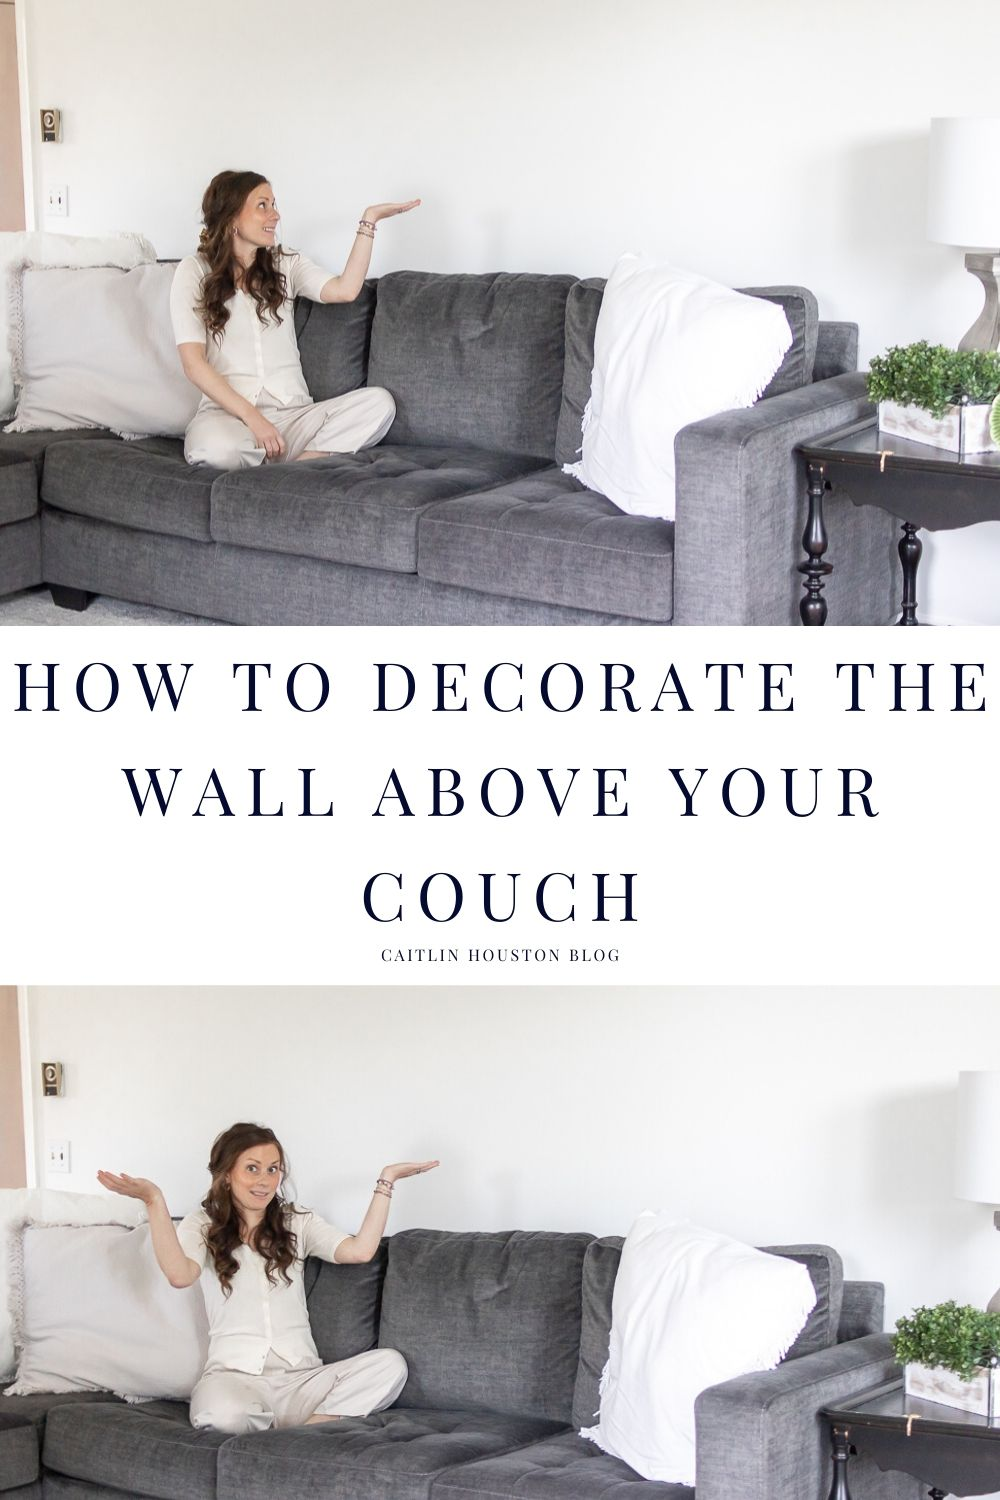 How to Decorate the Wall Above Your Couch